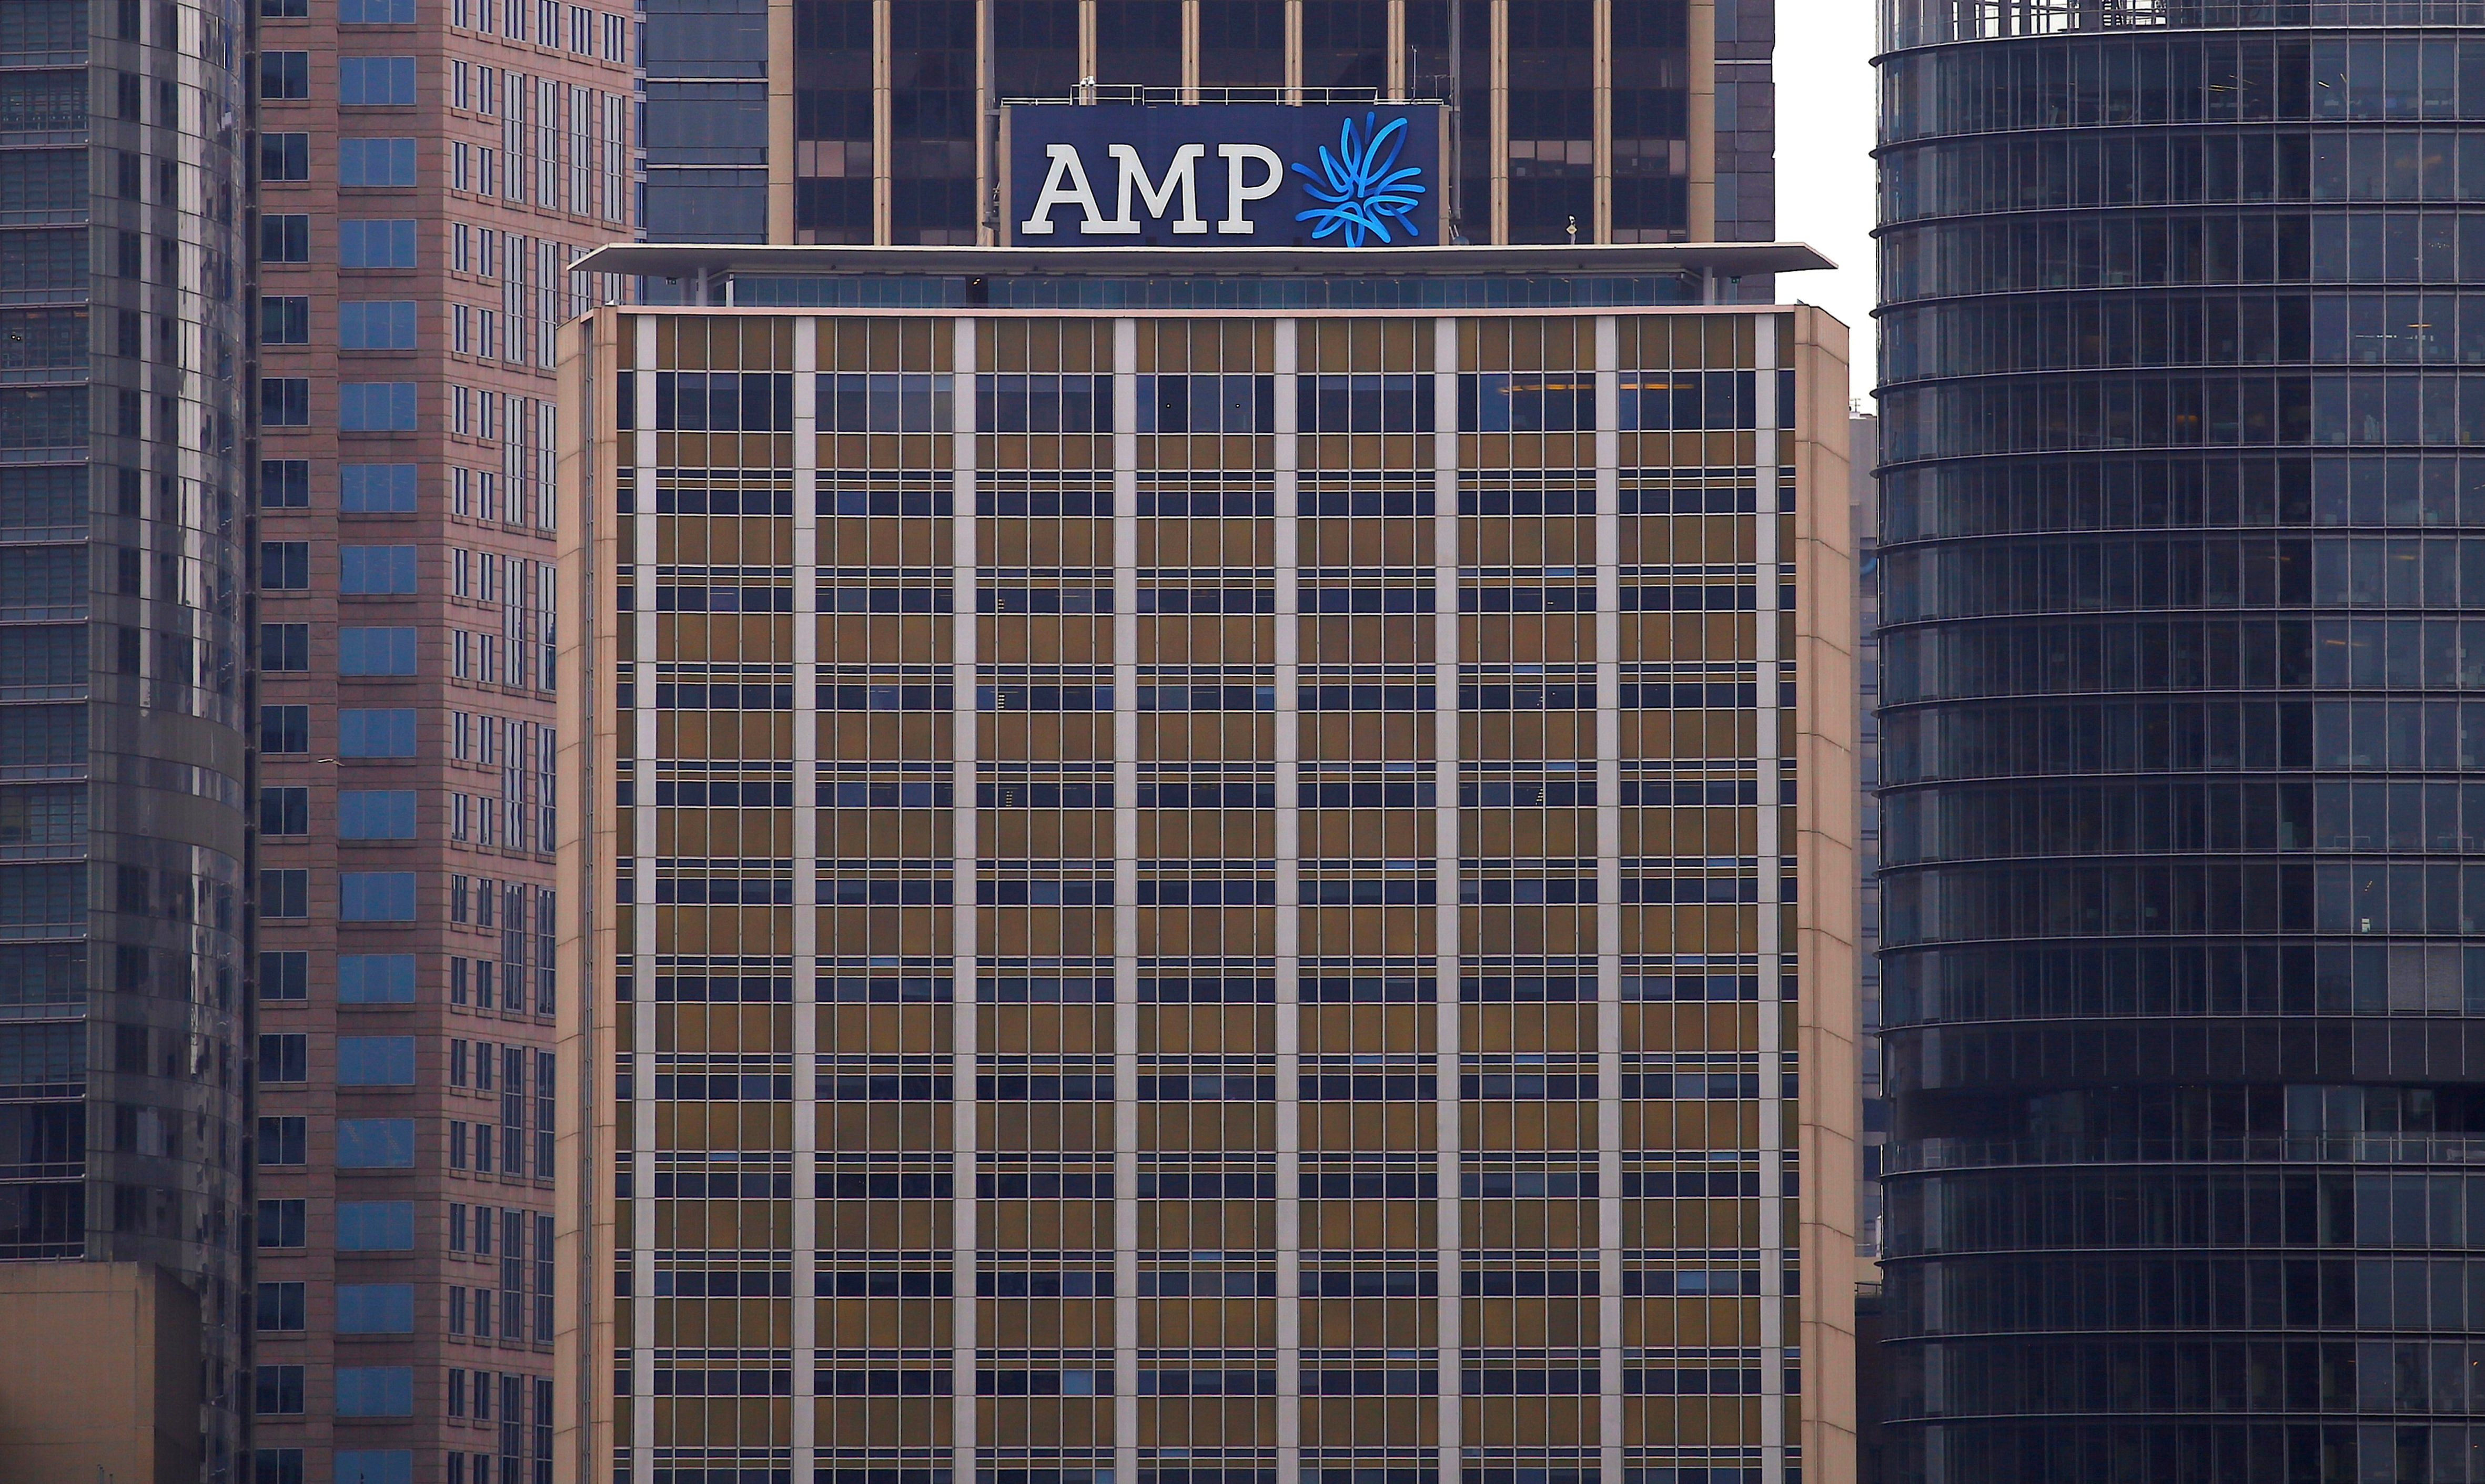 The head office building of AMP Ltd, Australia's biggest retail wealth manager, is seen in central Sydney, Australia, October 28, 2016. REUTERS/David Gray